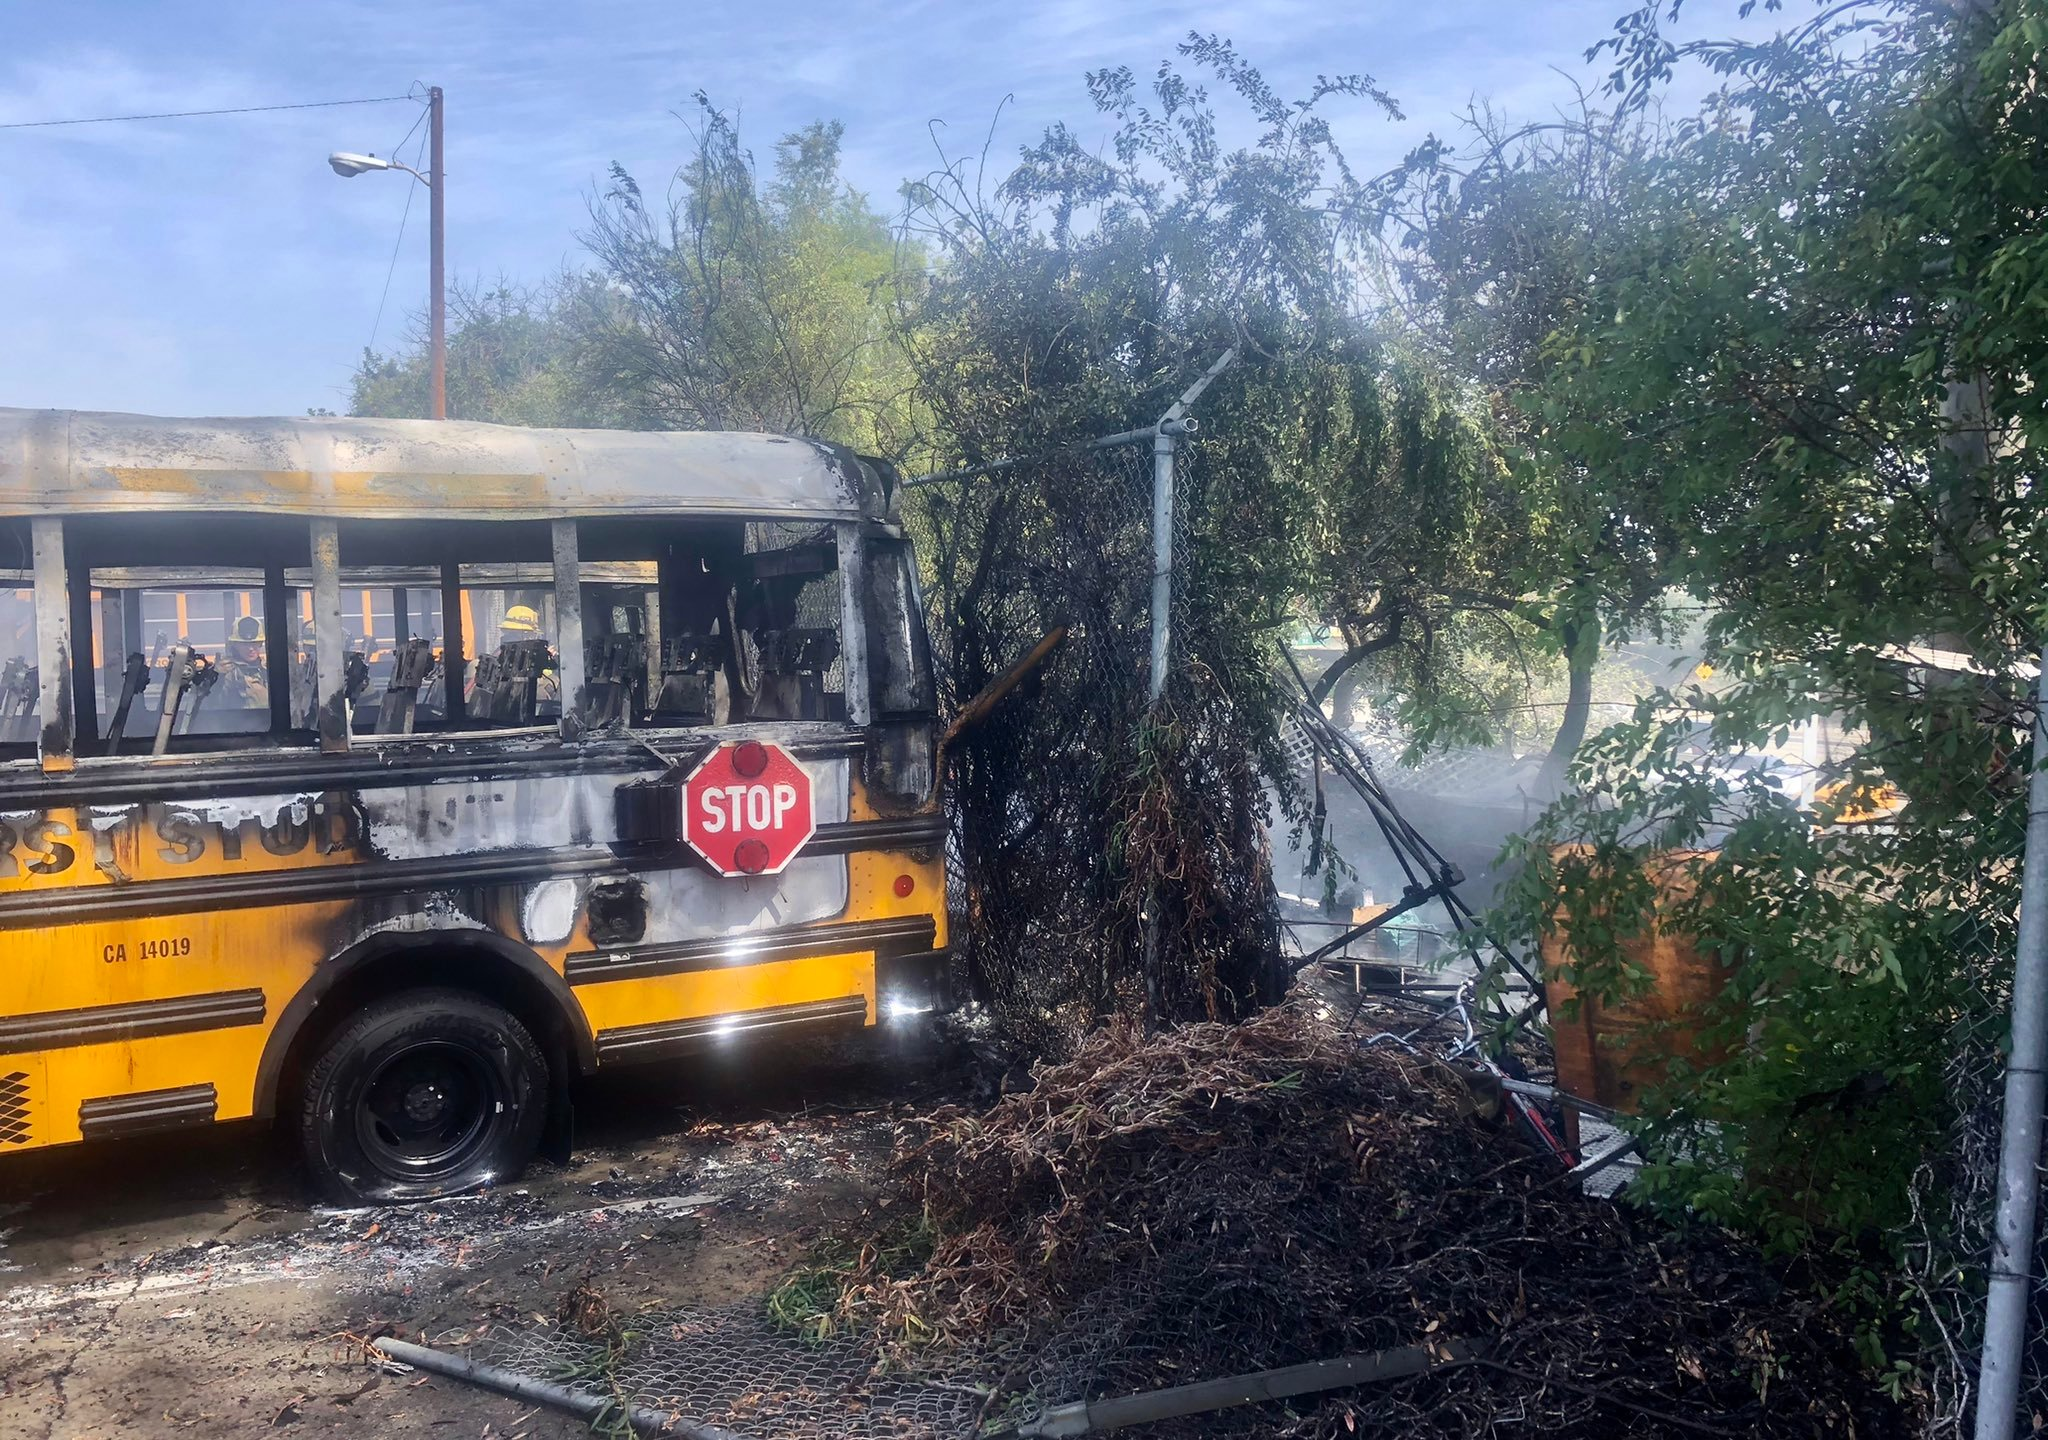 A small brush fire in Long Beach charred multiple unoccupied school buses on April 15, 2021. (Long Beach Fire Department)